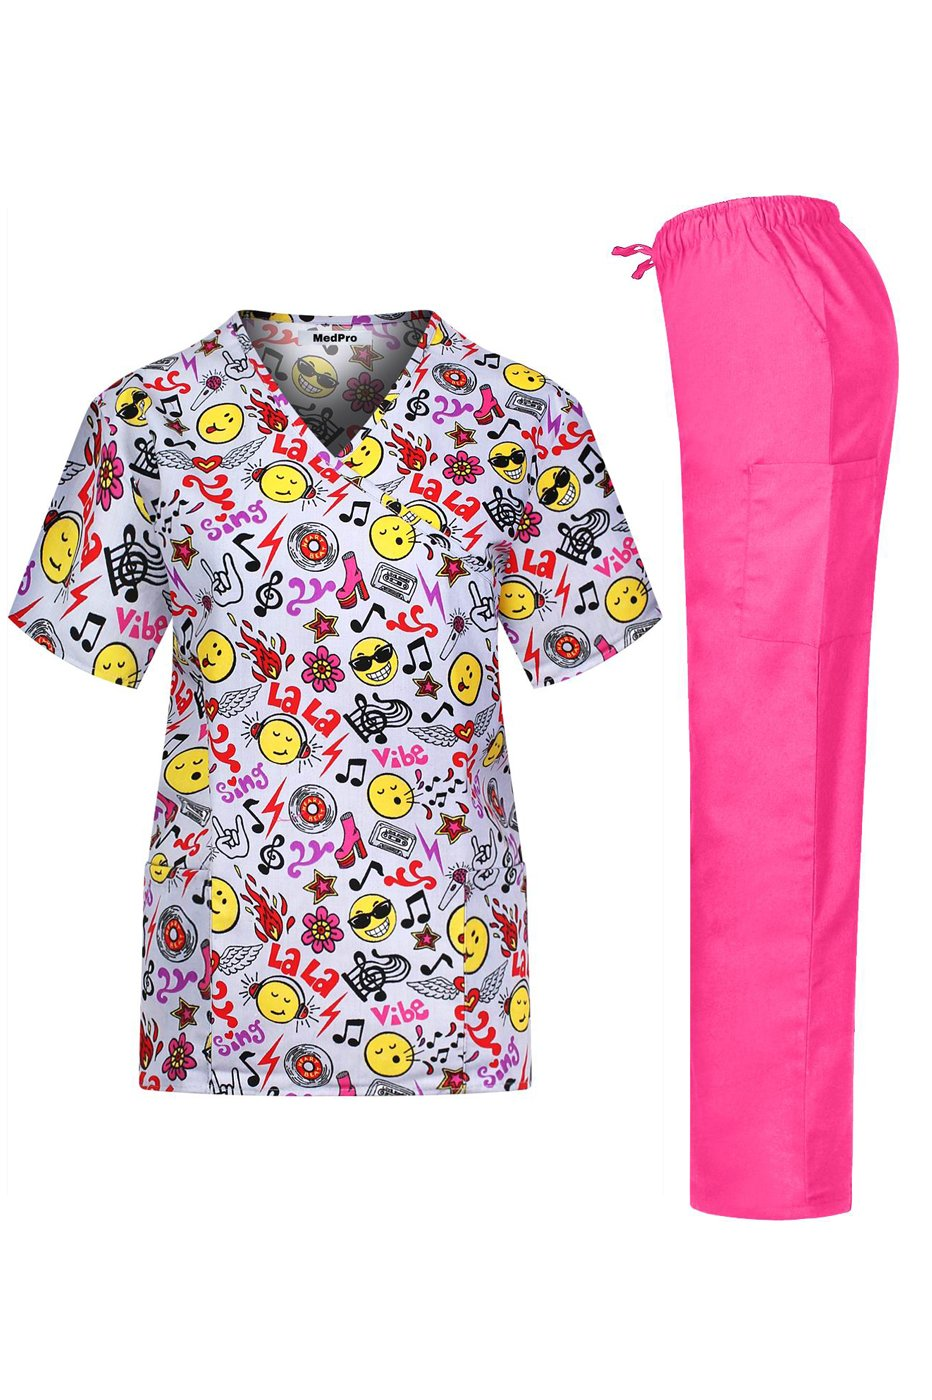 MedPro Women's Medical Scrub Set with Printed Top and Cargo Pants Yellow Pink 2XL(9003-1188GR) by MedPro (Image #1)